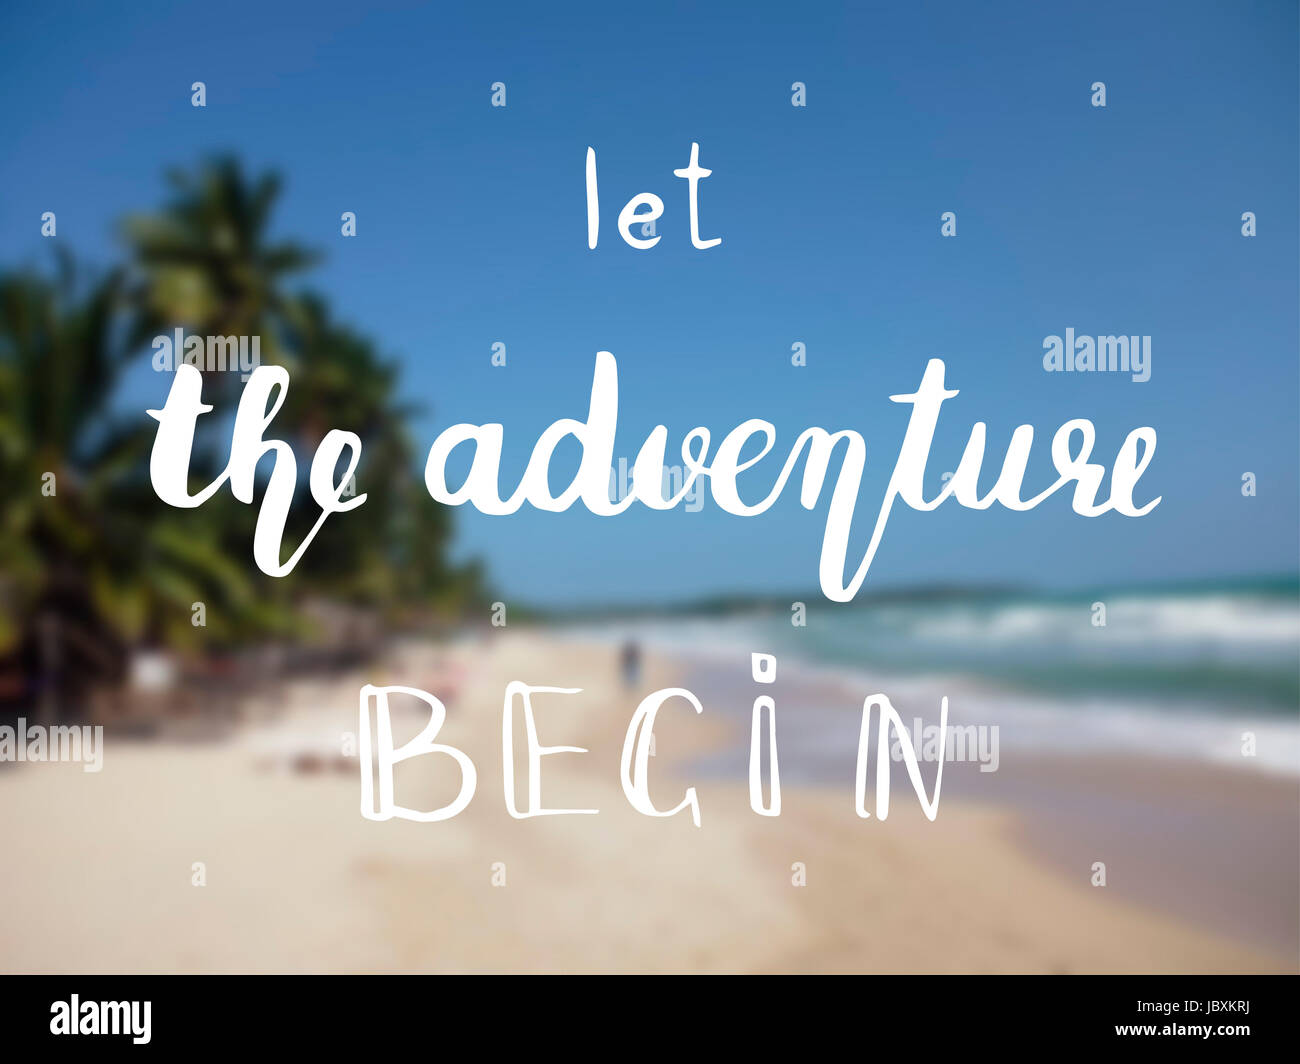 Life Quotes Inspiration The Adventure Begins Life Style Inspiration Quotes Lettering Stock